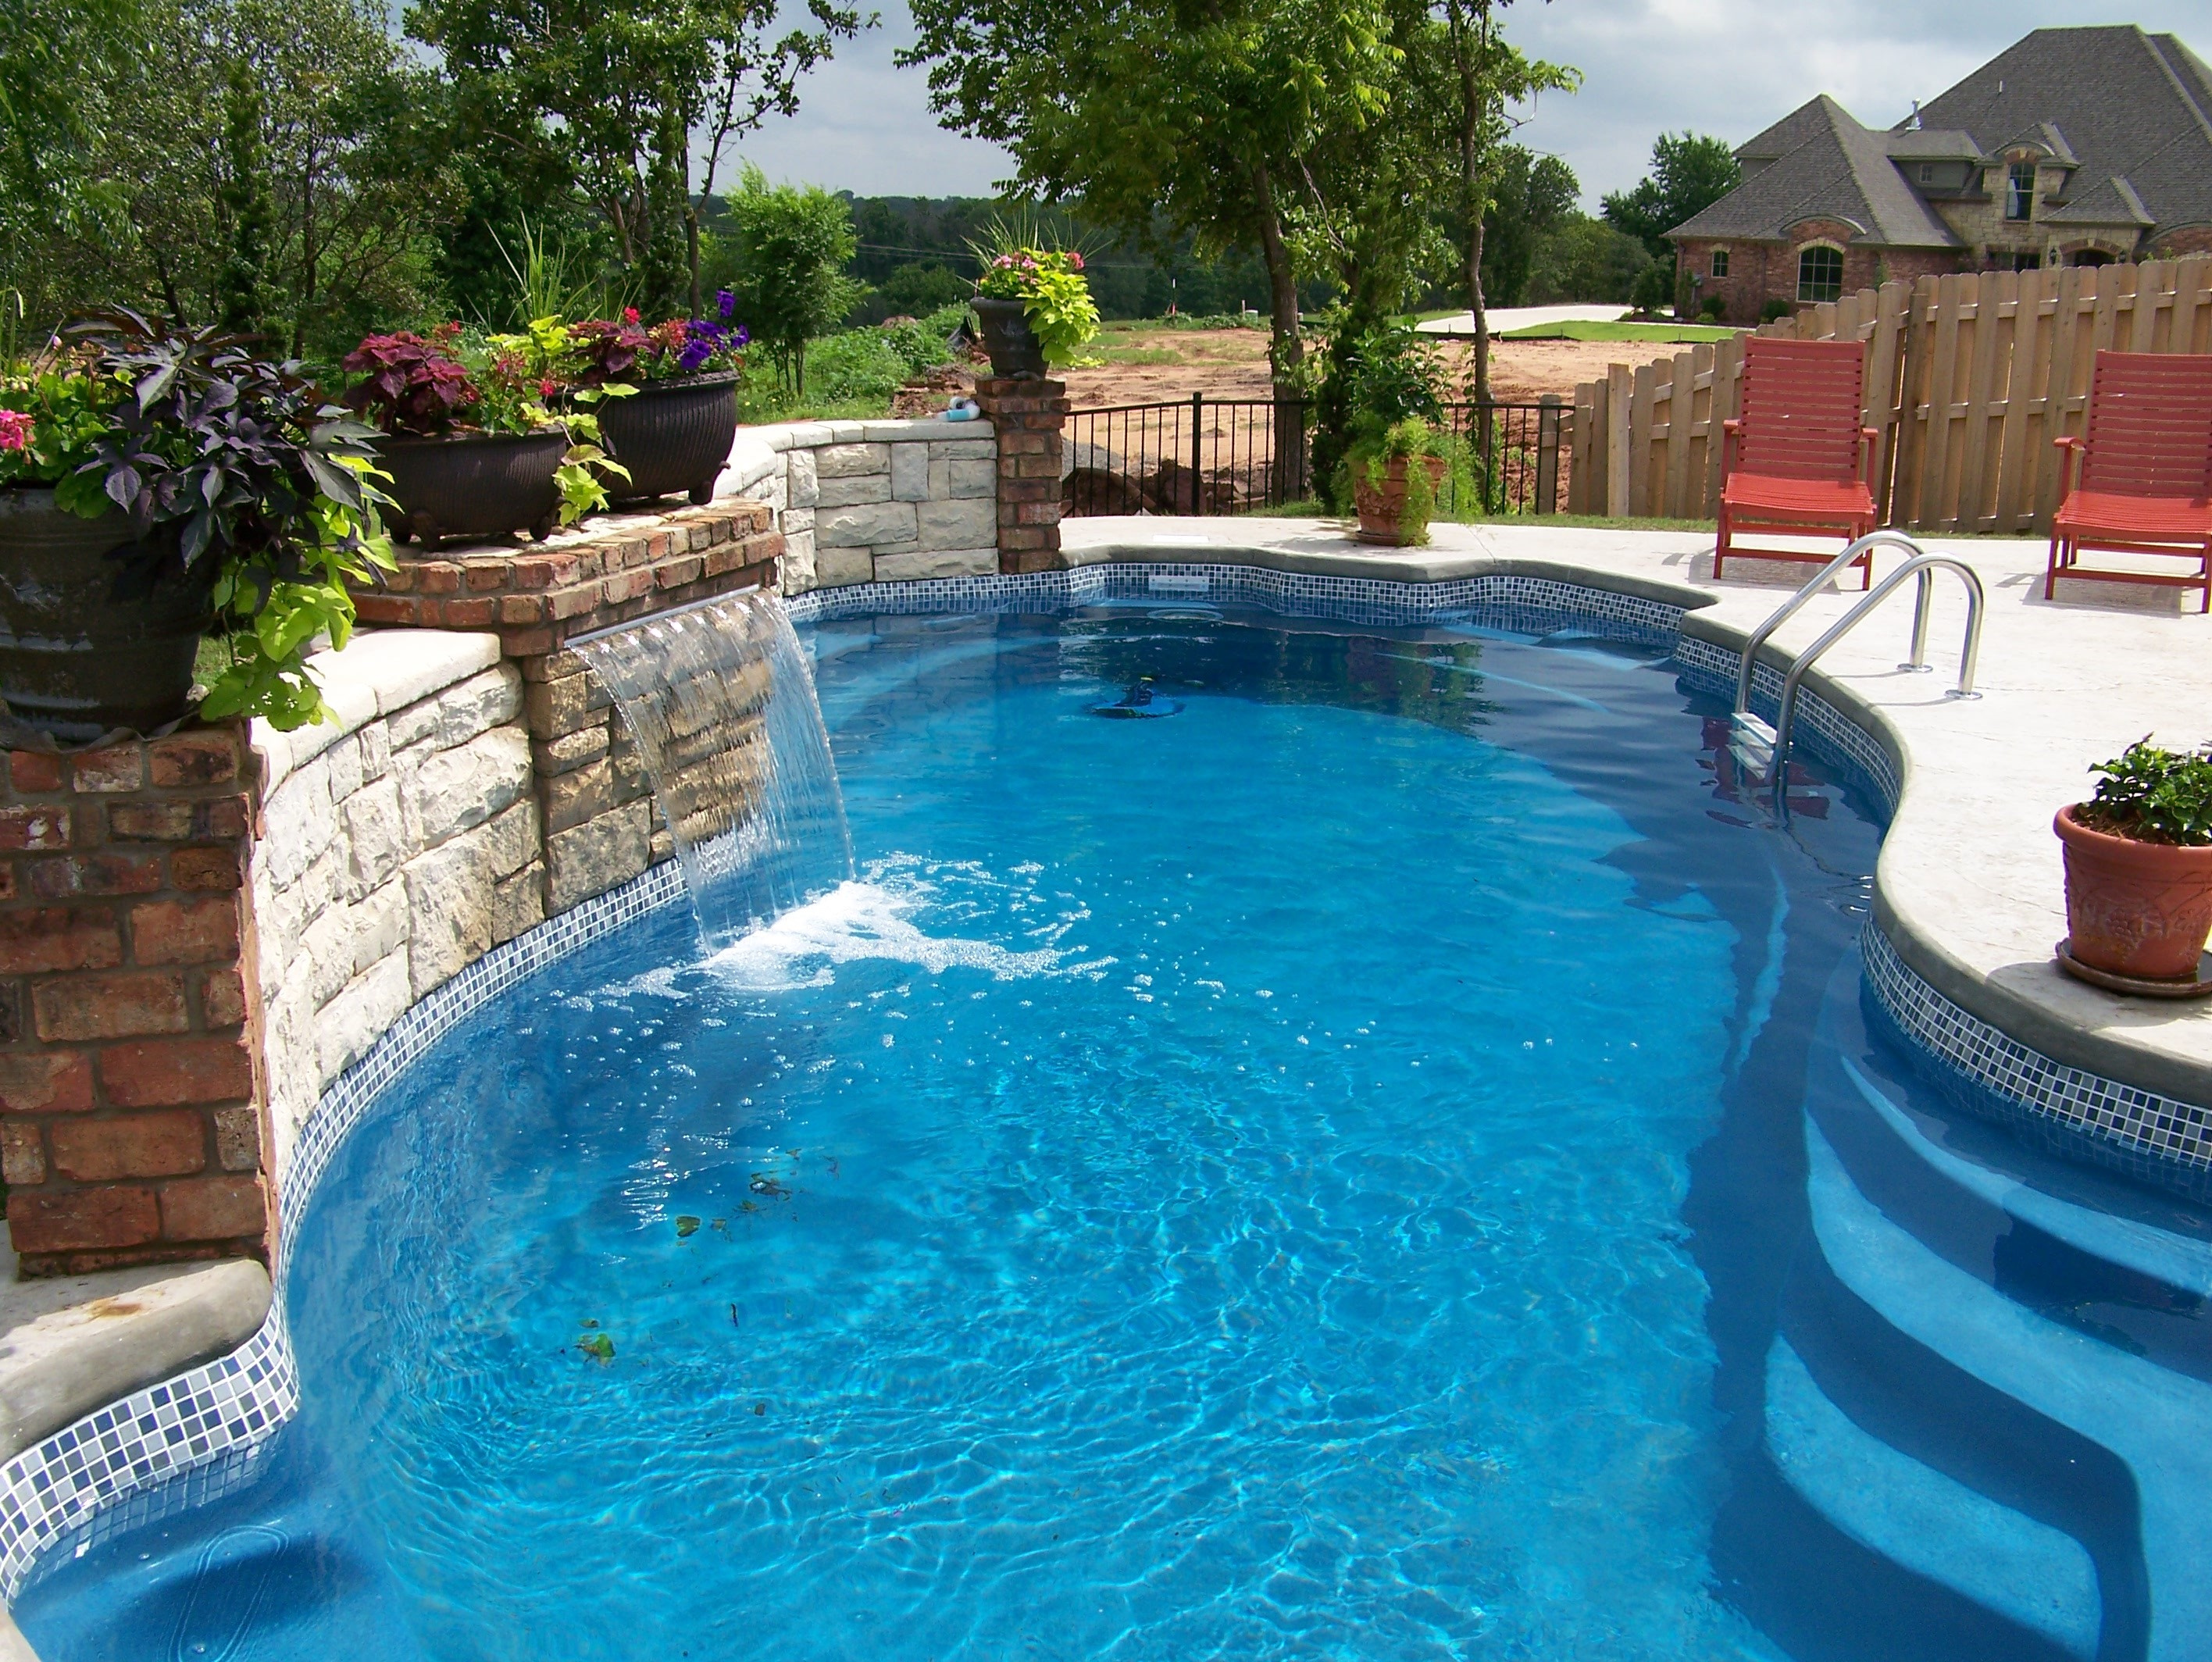 Residential & Commercial Pool Service Business